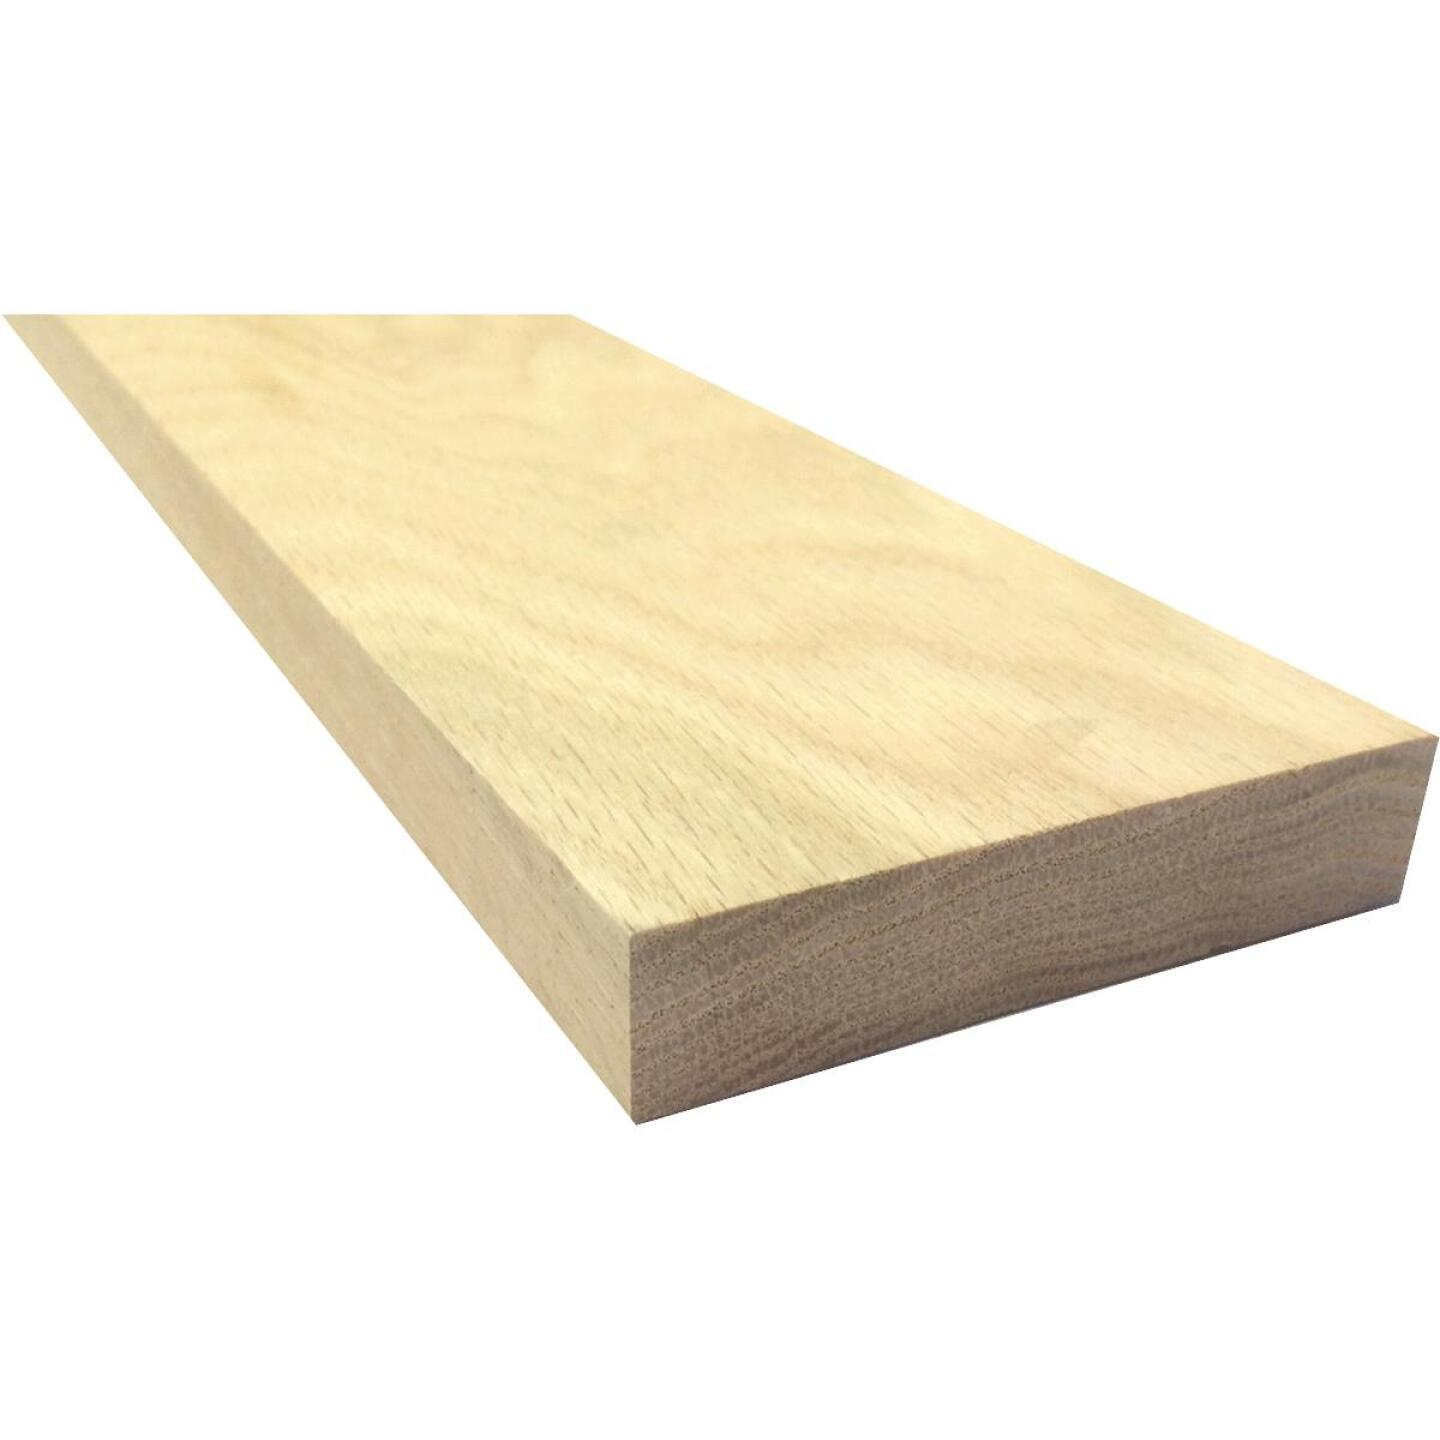 Waddell 1 In. x 4 In. x 3 Ft. Red Oak Board Image 1